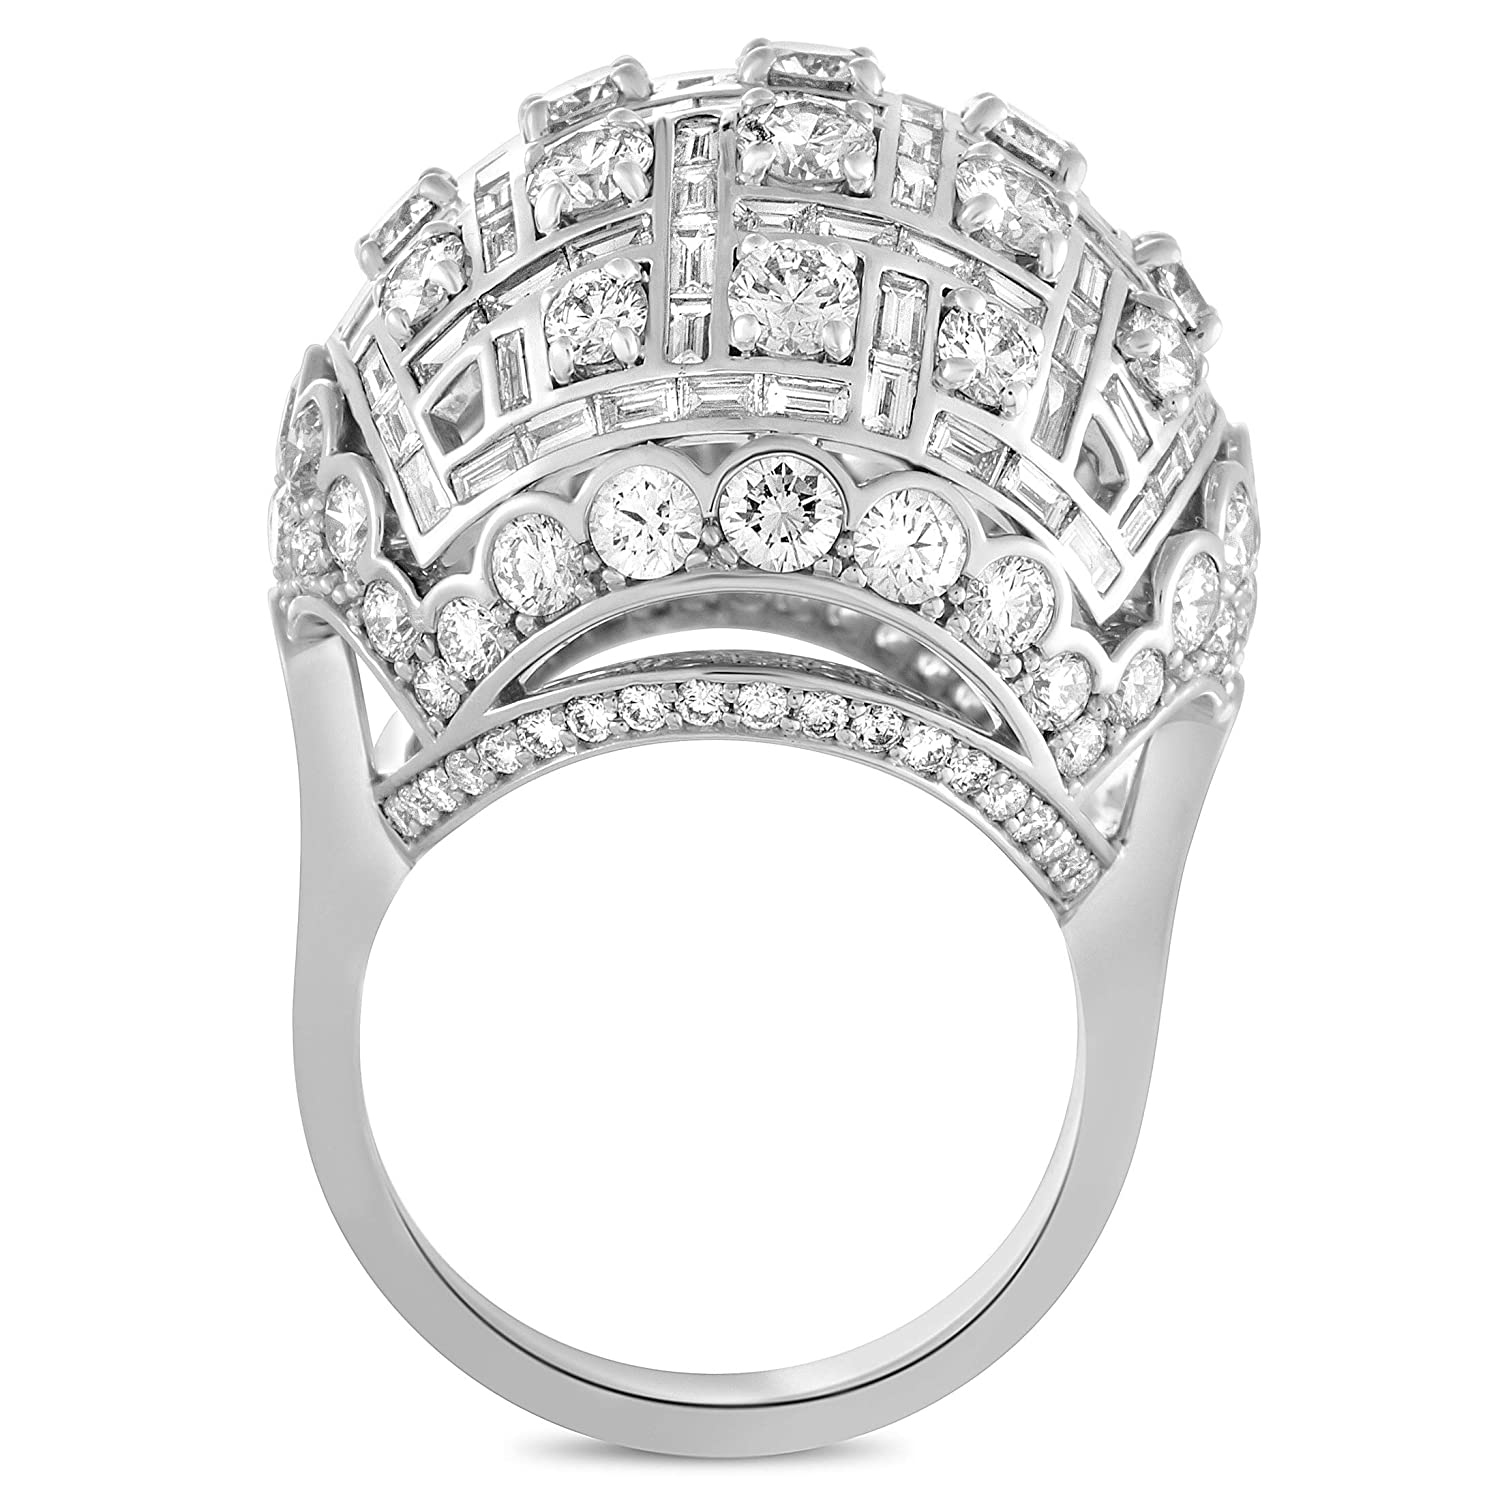 Amazon.com: Harry Winston (Est.) Harry Winston - Anillo de ...